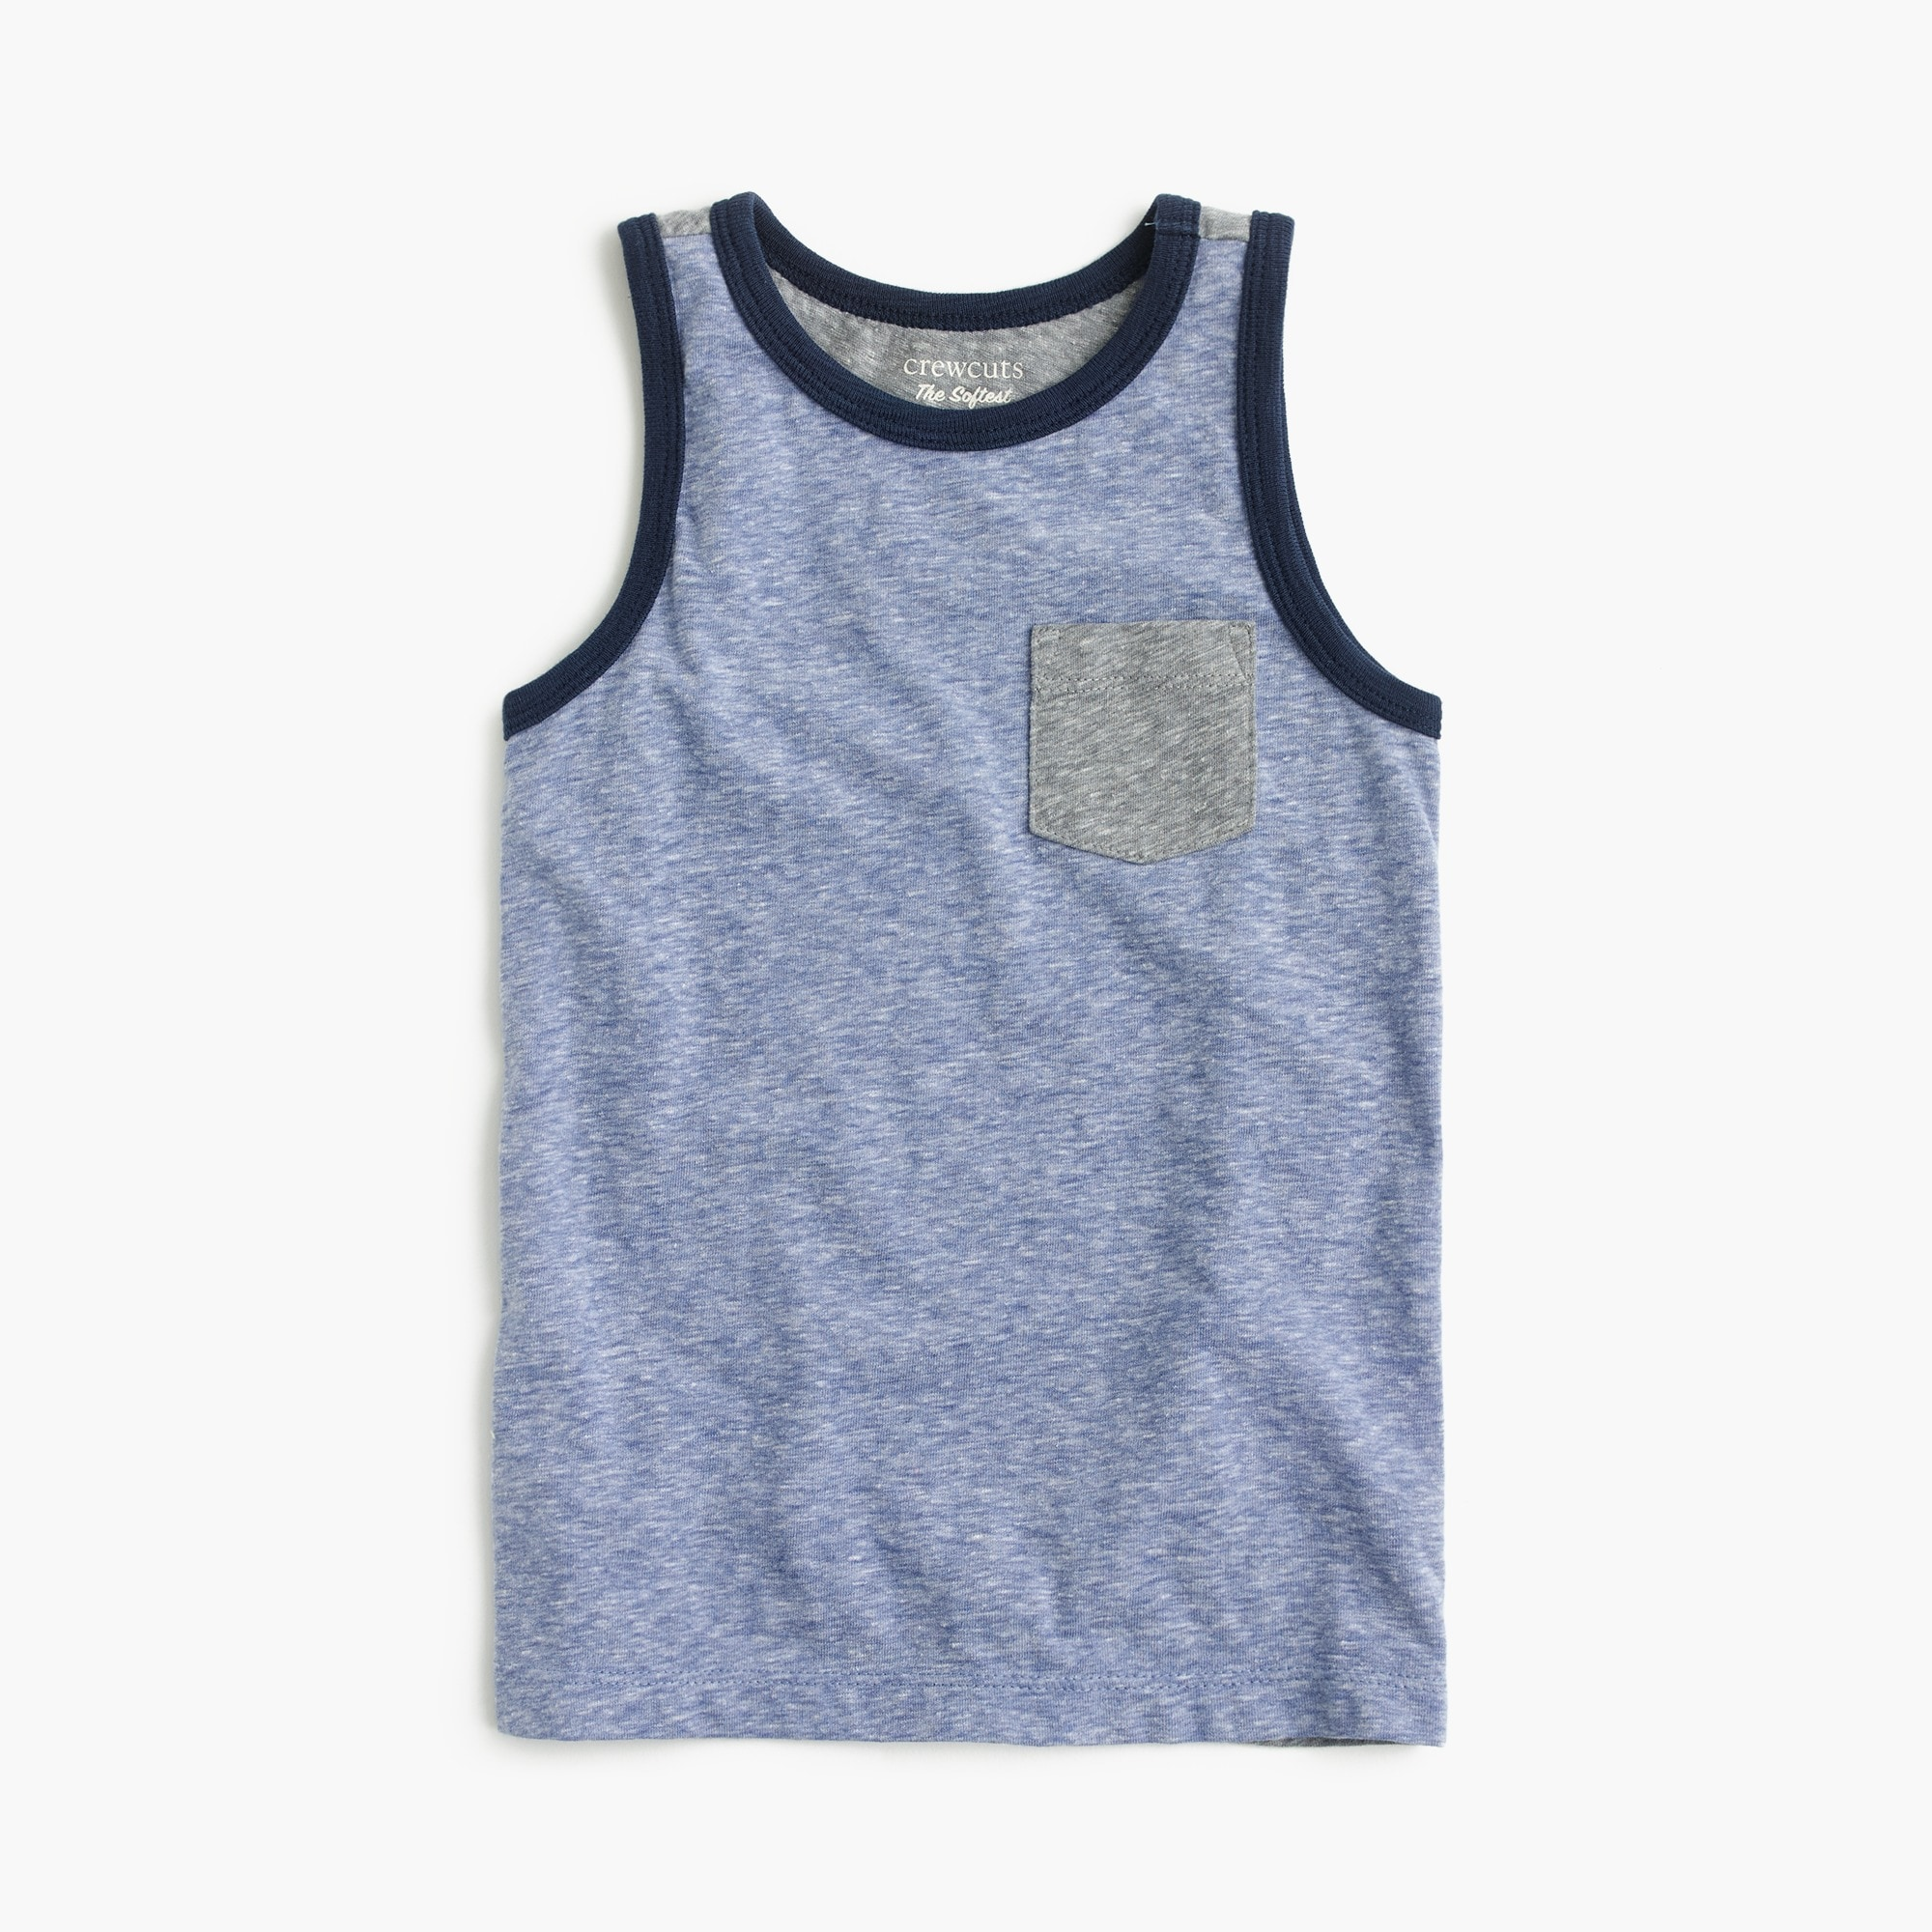 Image 1 for Boys' colorblocked pocket tank top